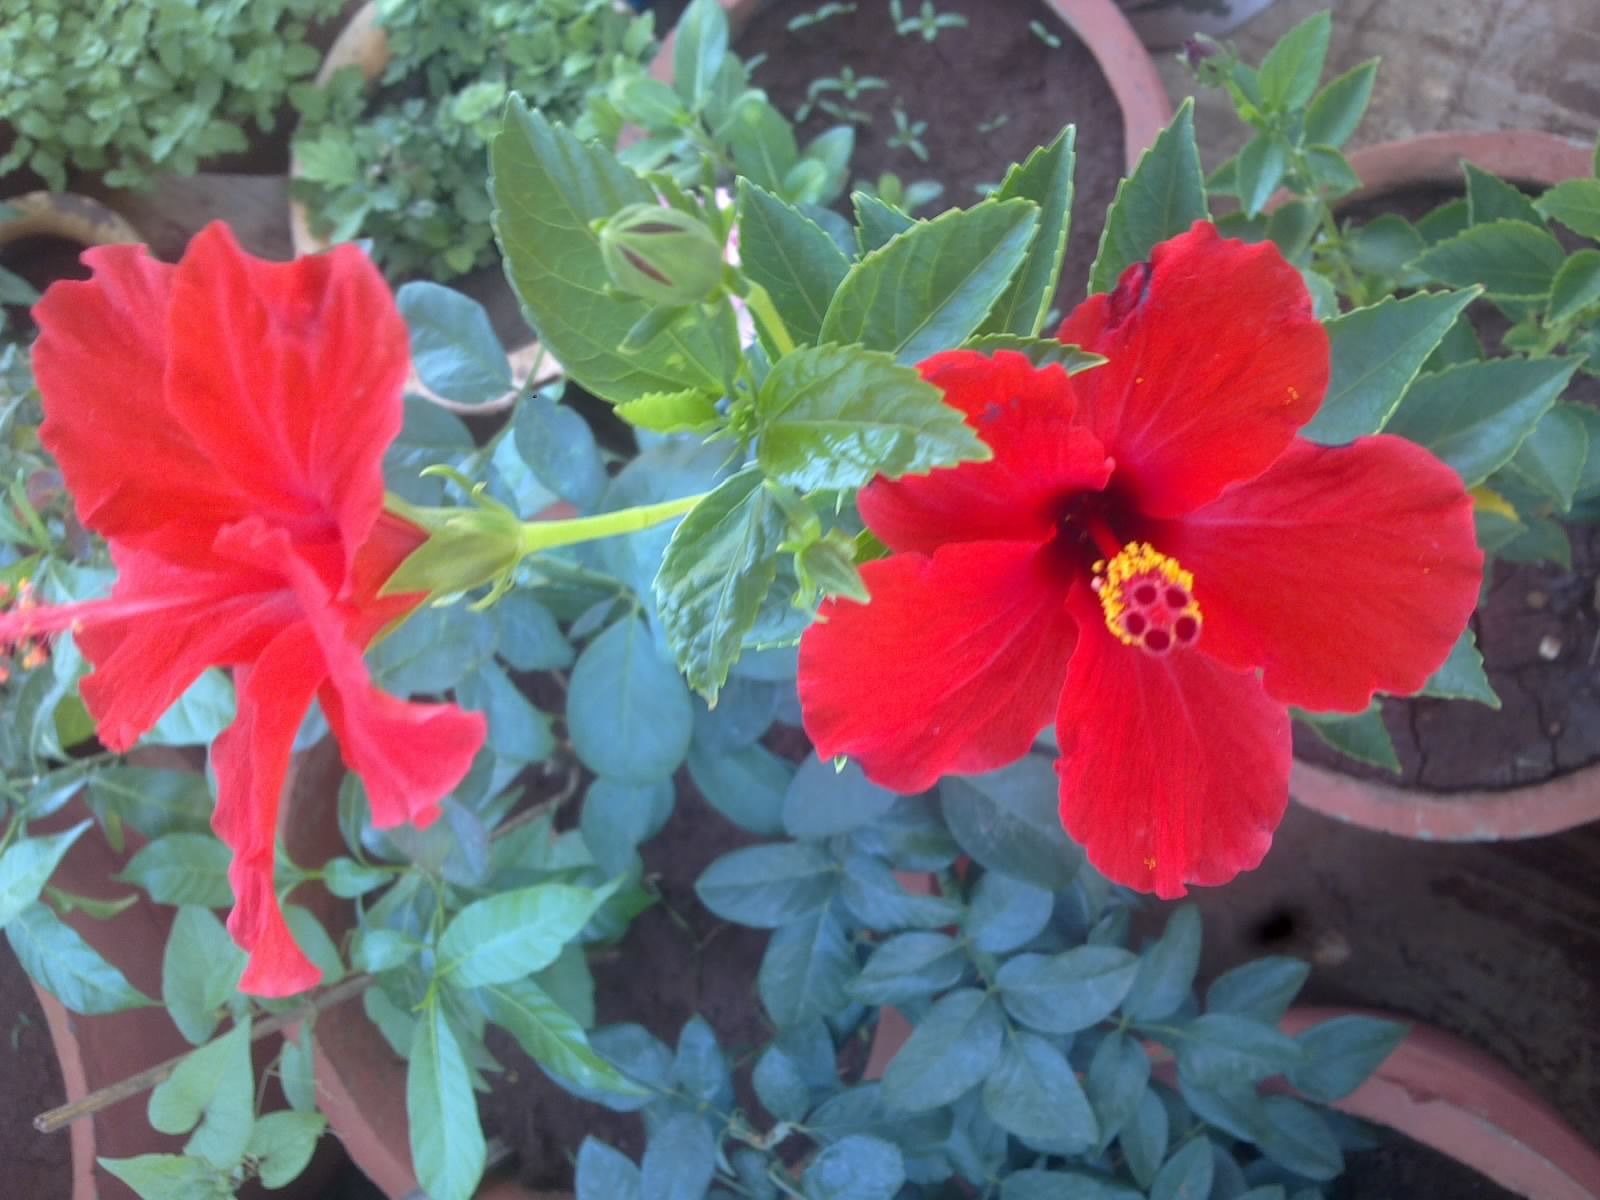 Plants growing in my potted garden june 2015 red hibiscus is a very hardy plant and does not get easily effected by any garden pestonce the flowering seems to slow down you can trim the plant to keep izmirmasajfo Image collections